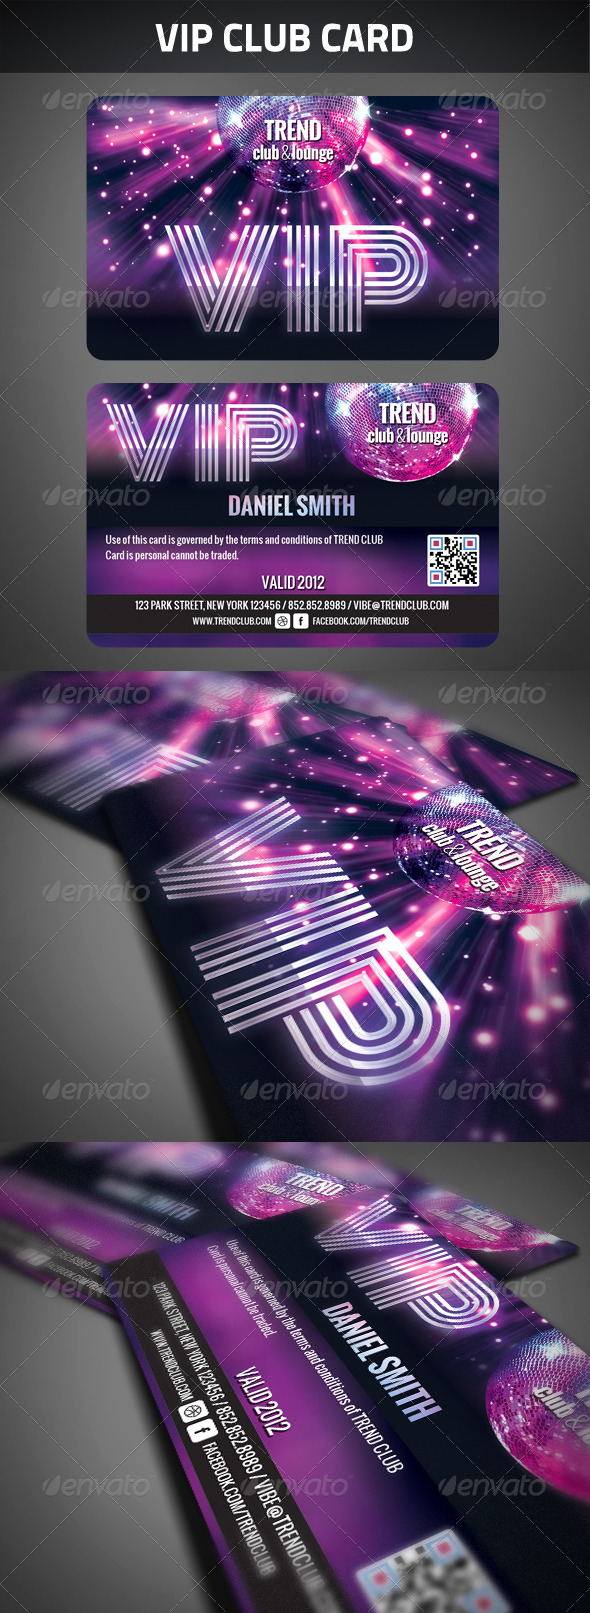 VIP Club Membership Card - Cards & Invites Print Templates